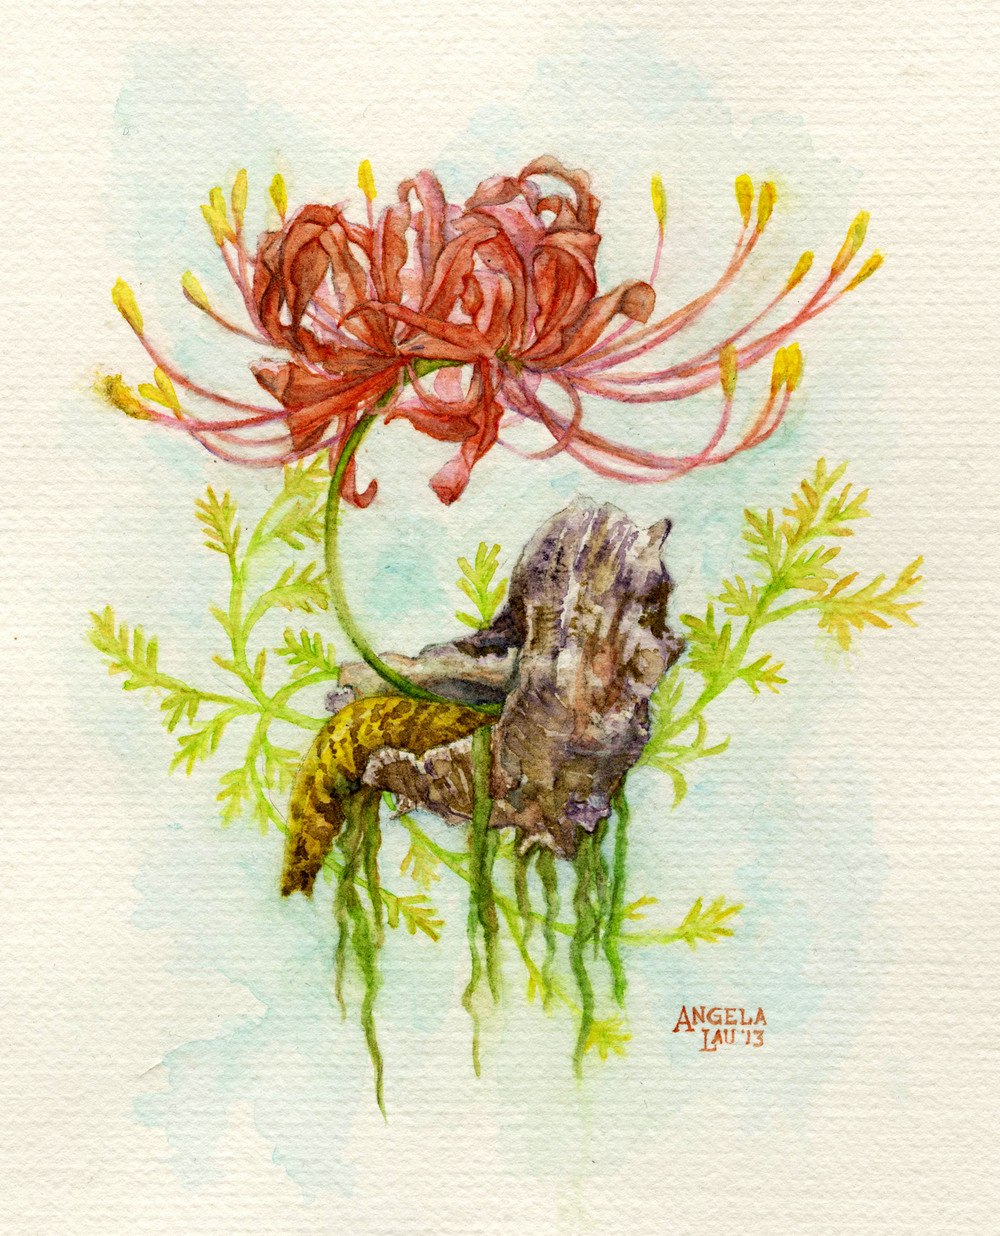 Snail and Spider Lily  Watercolor on paper 2013  A sea snail and a spider lily.